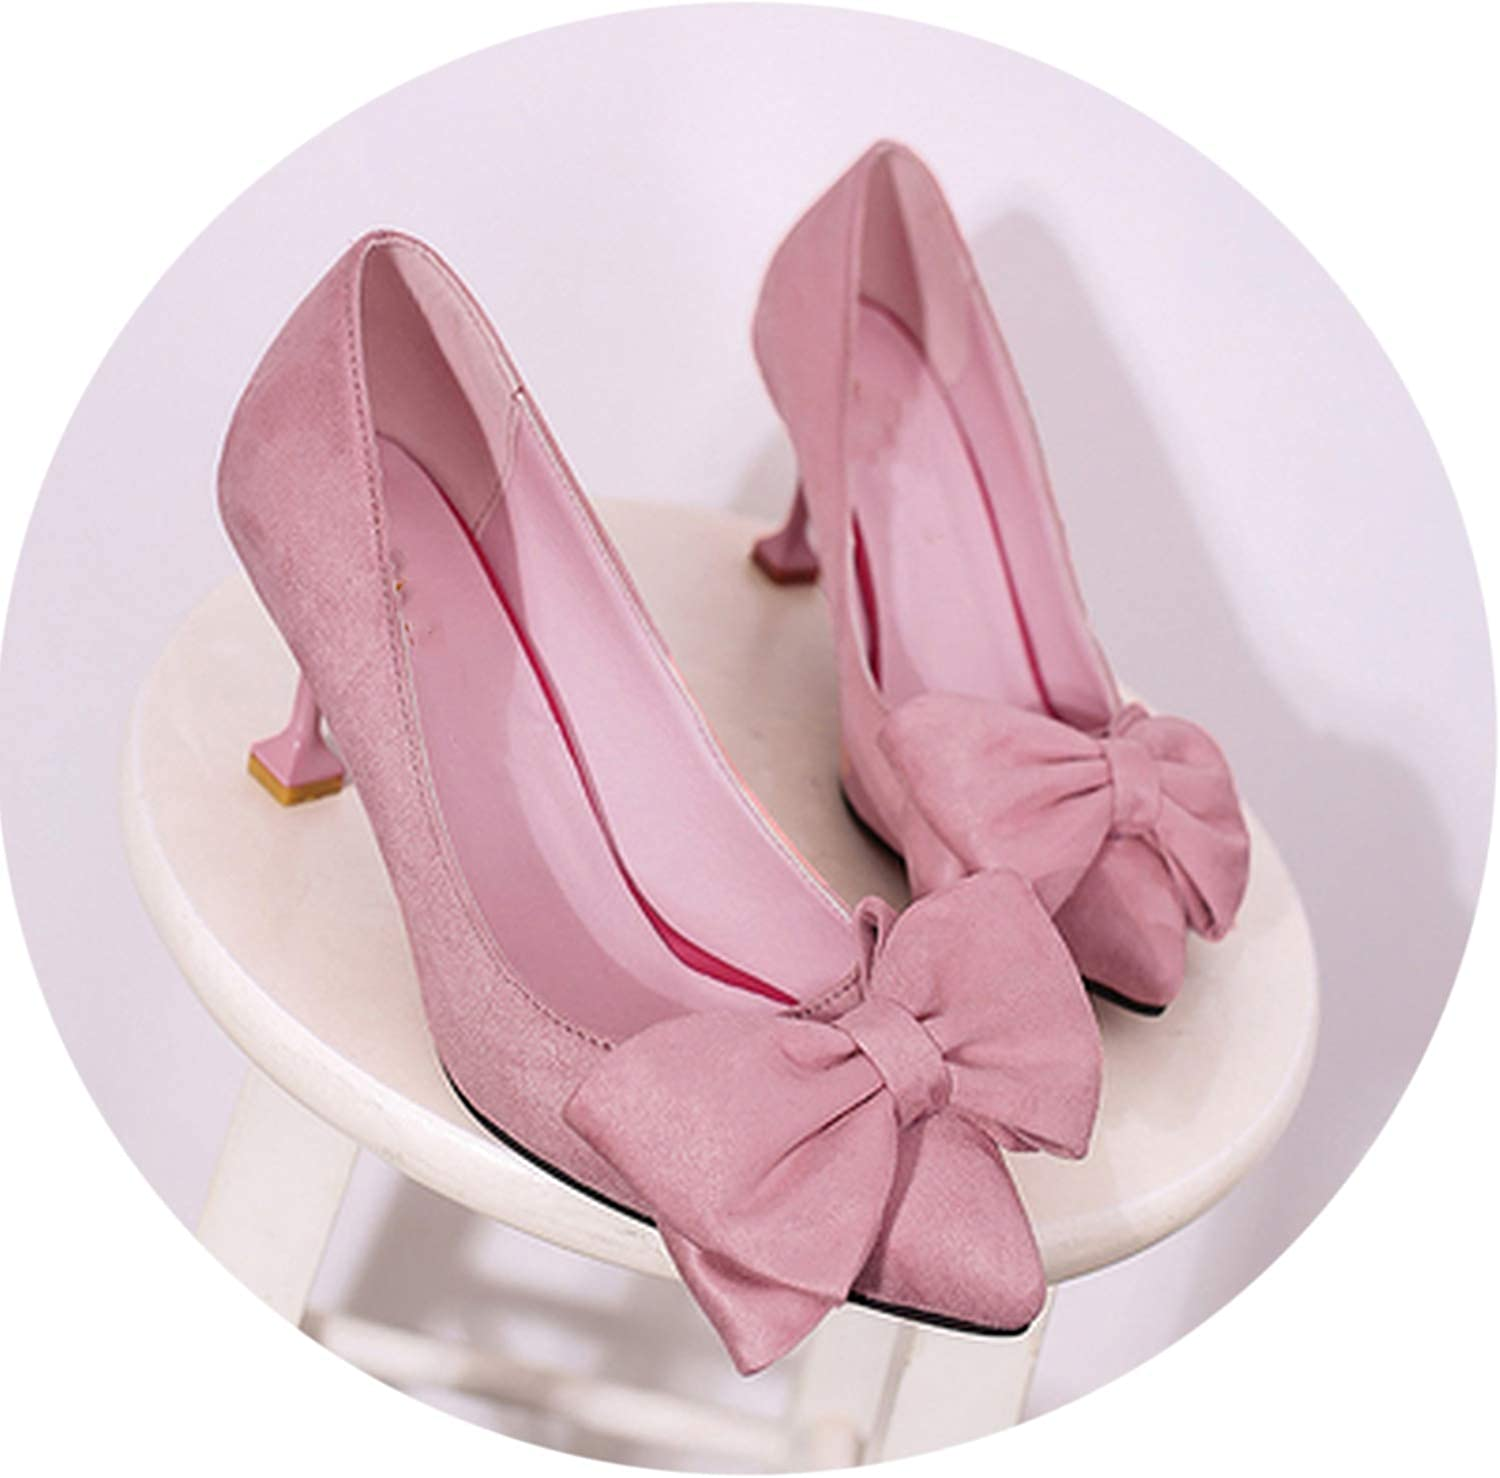 Bow tie high Heel Cute Spring & Summer Slip on shoes Comfy shoes a